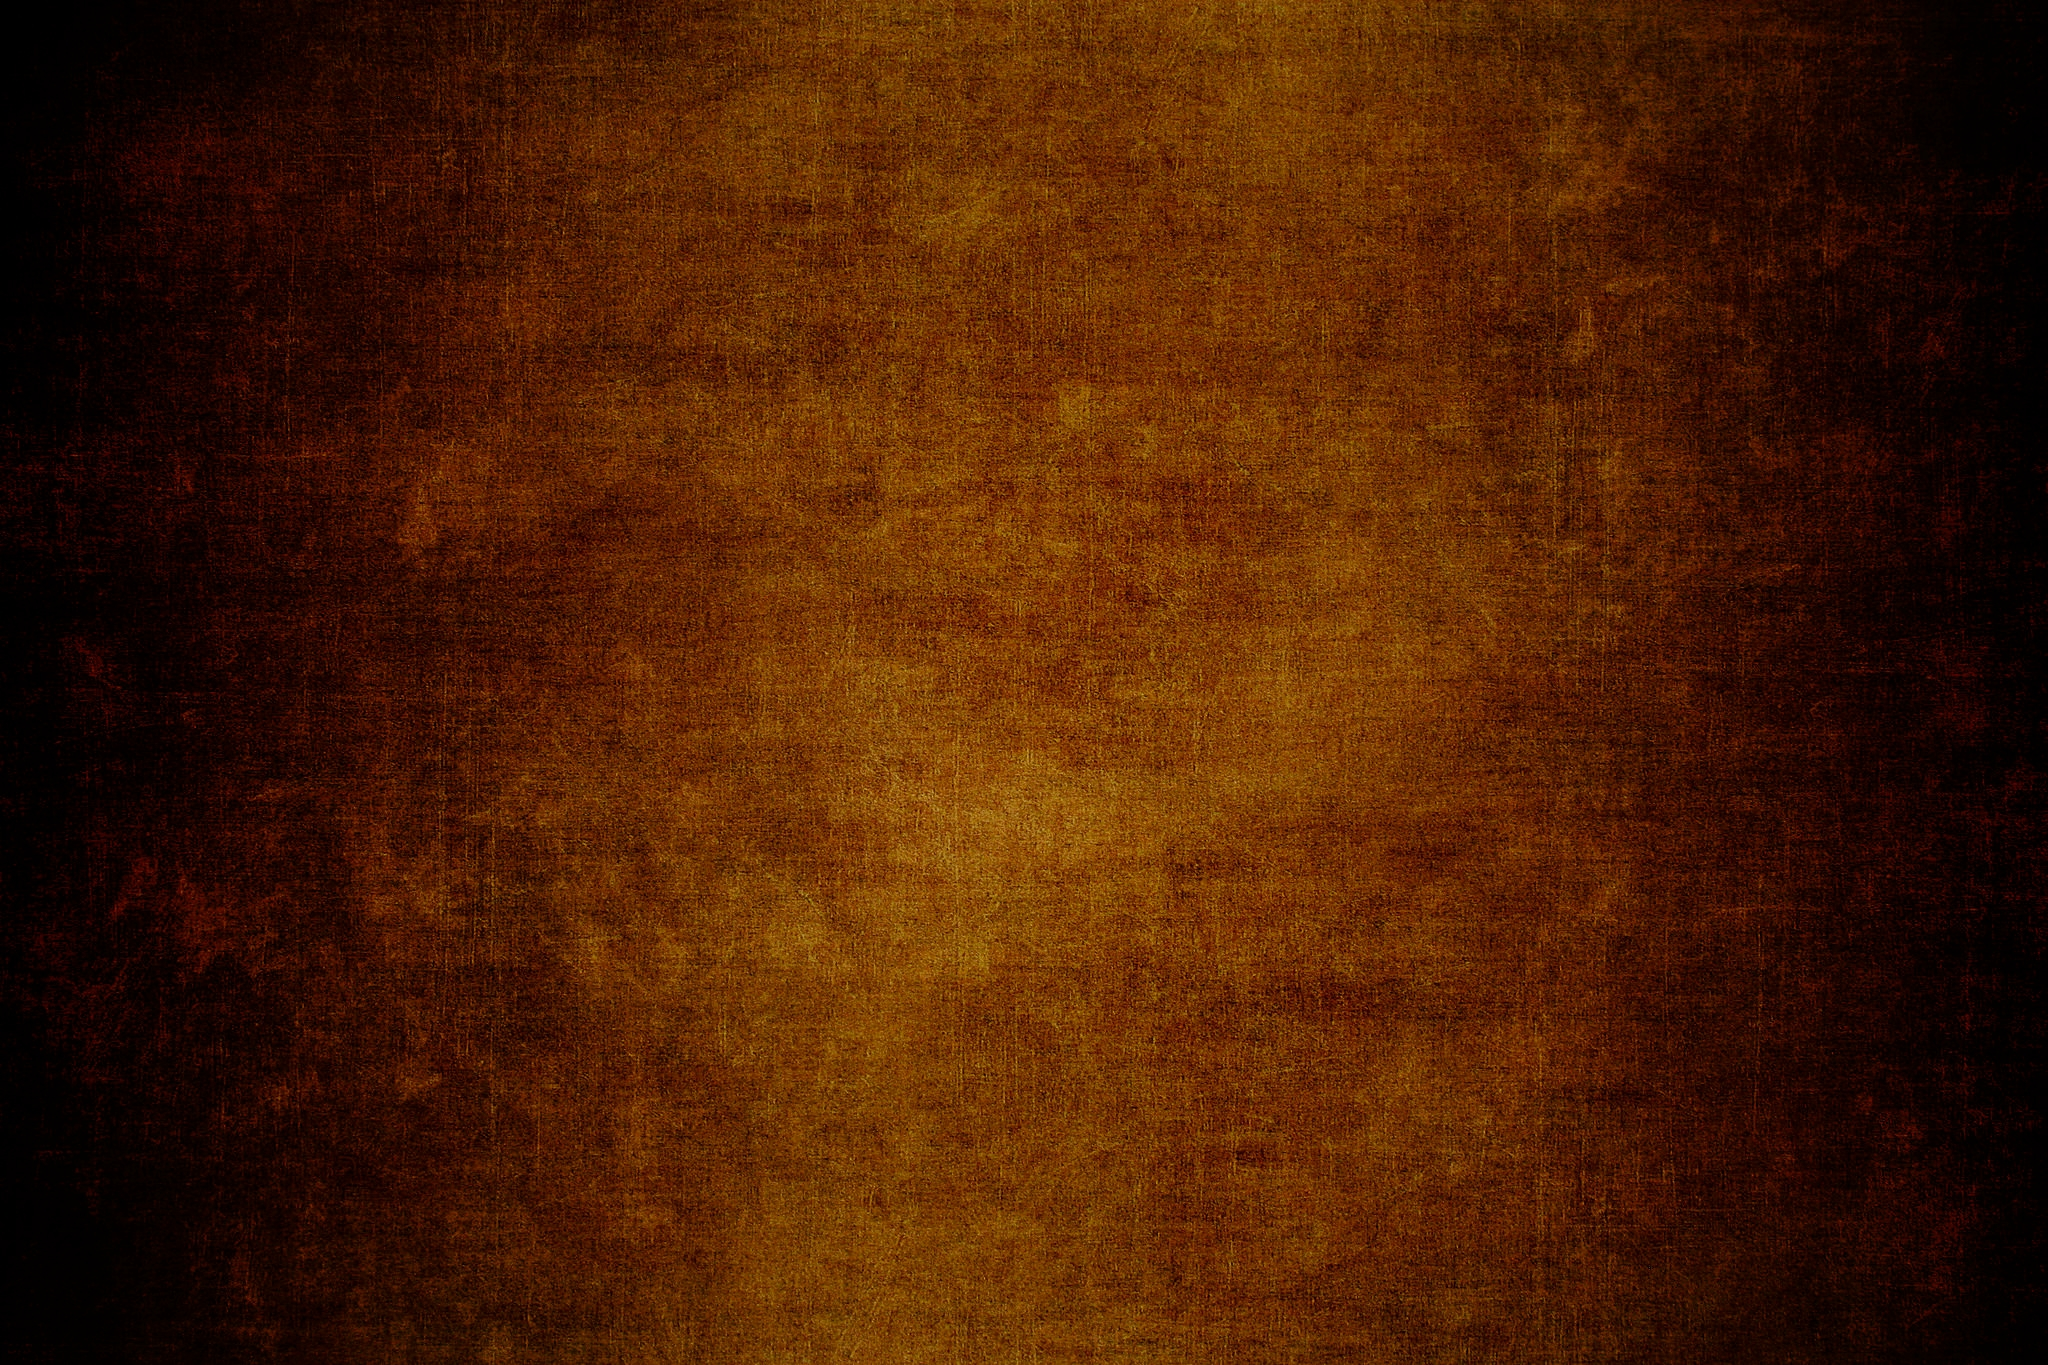 Abstract Antique Brown Grunge Background Wallpaper